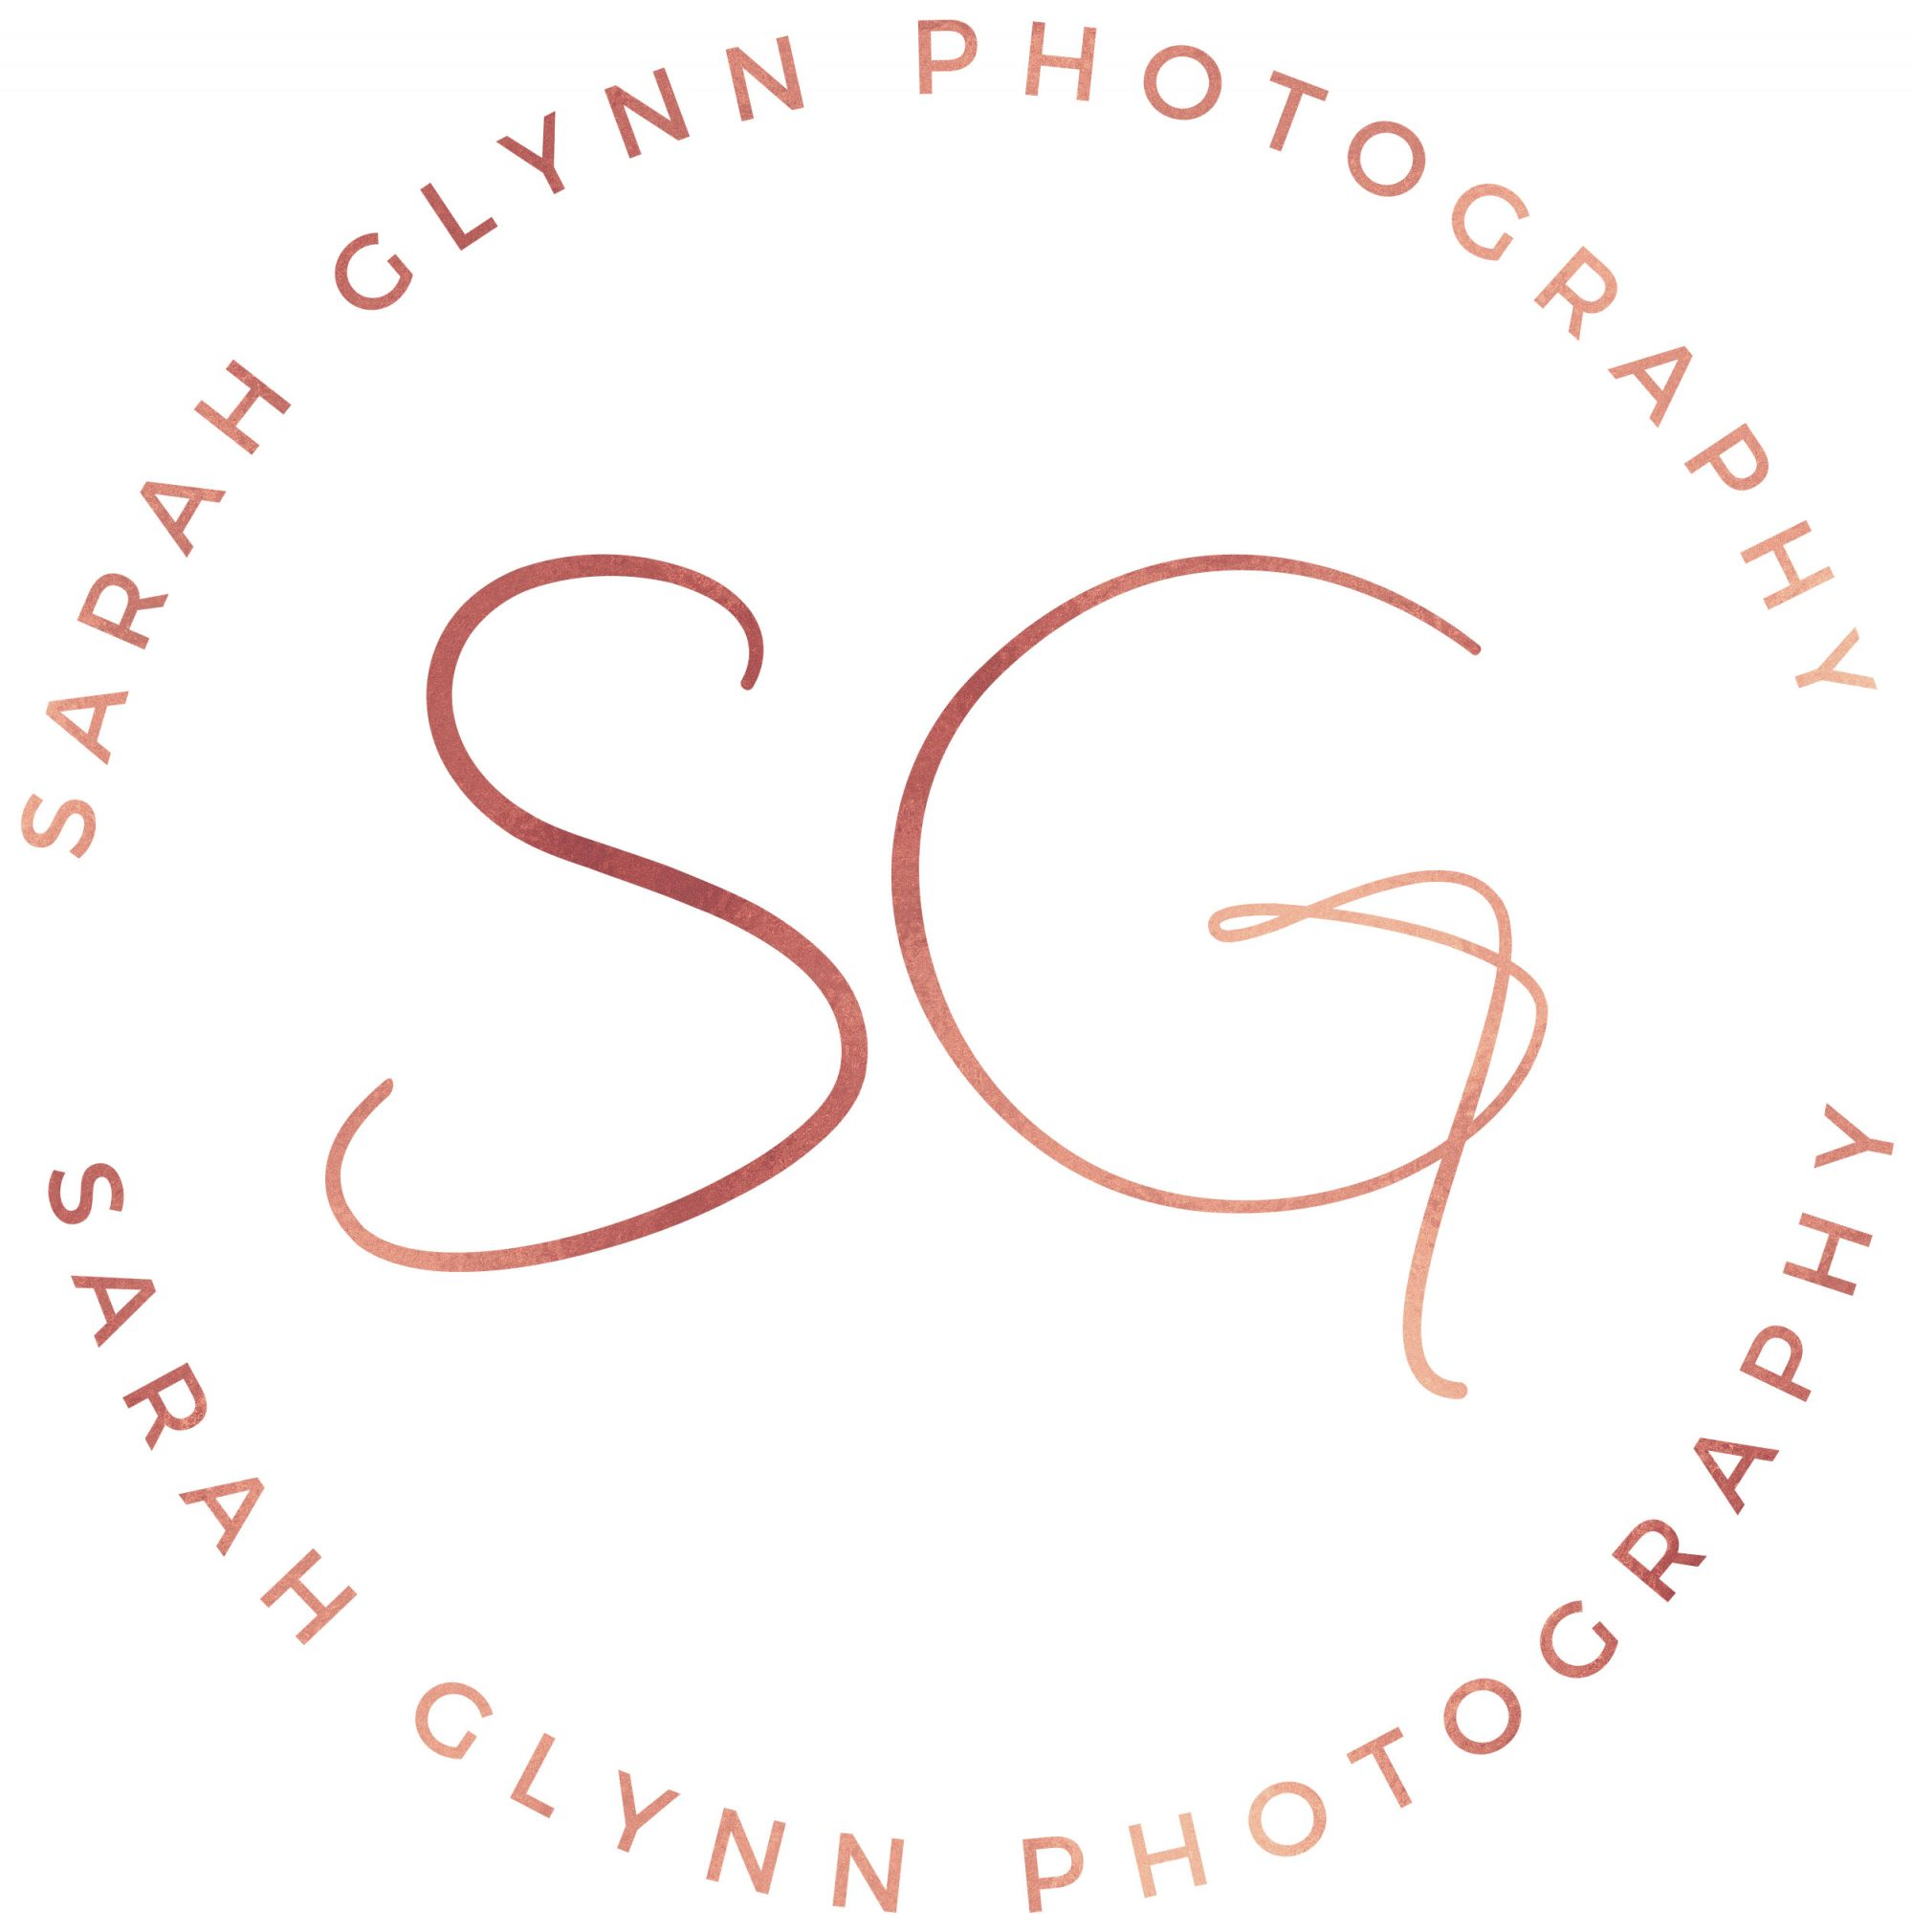 Sarah Glynn Photography